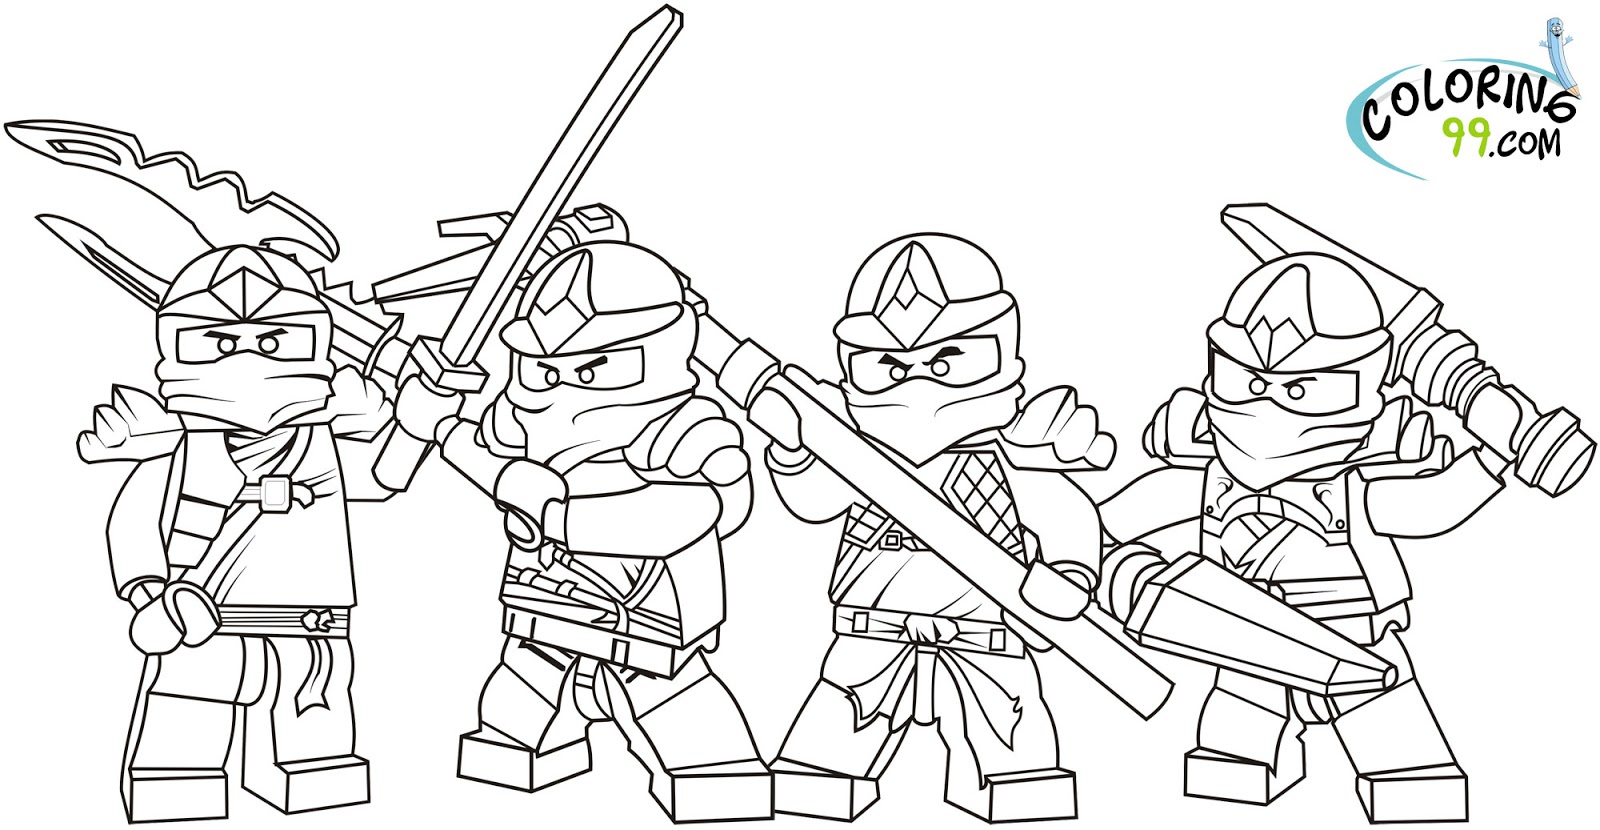 Lego Ninjago Coloring Pages Free Printable Pictures The Lego Coloring Pages